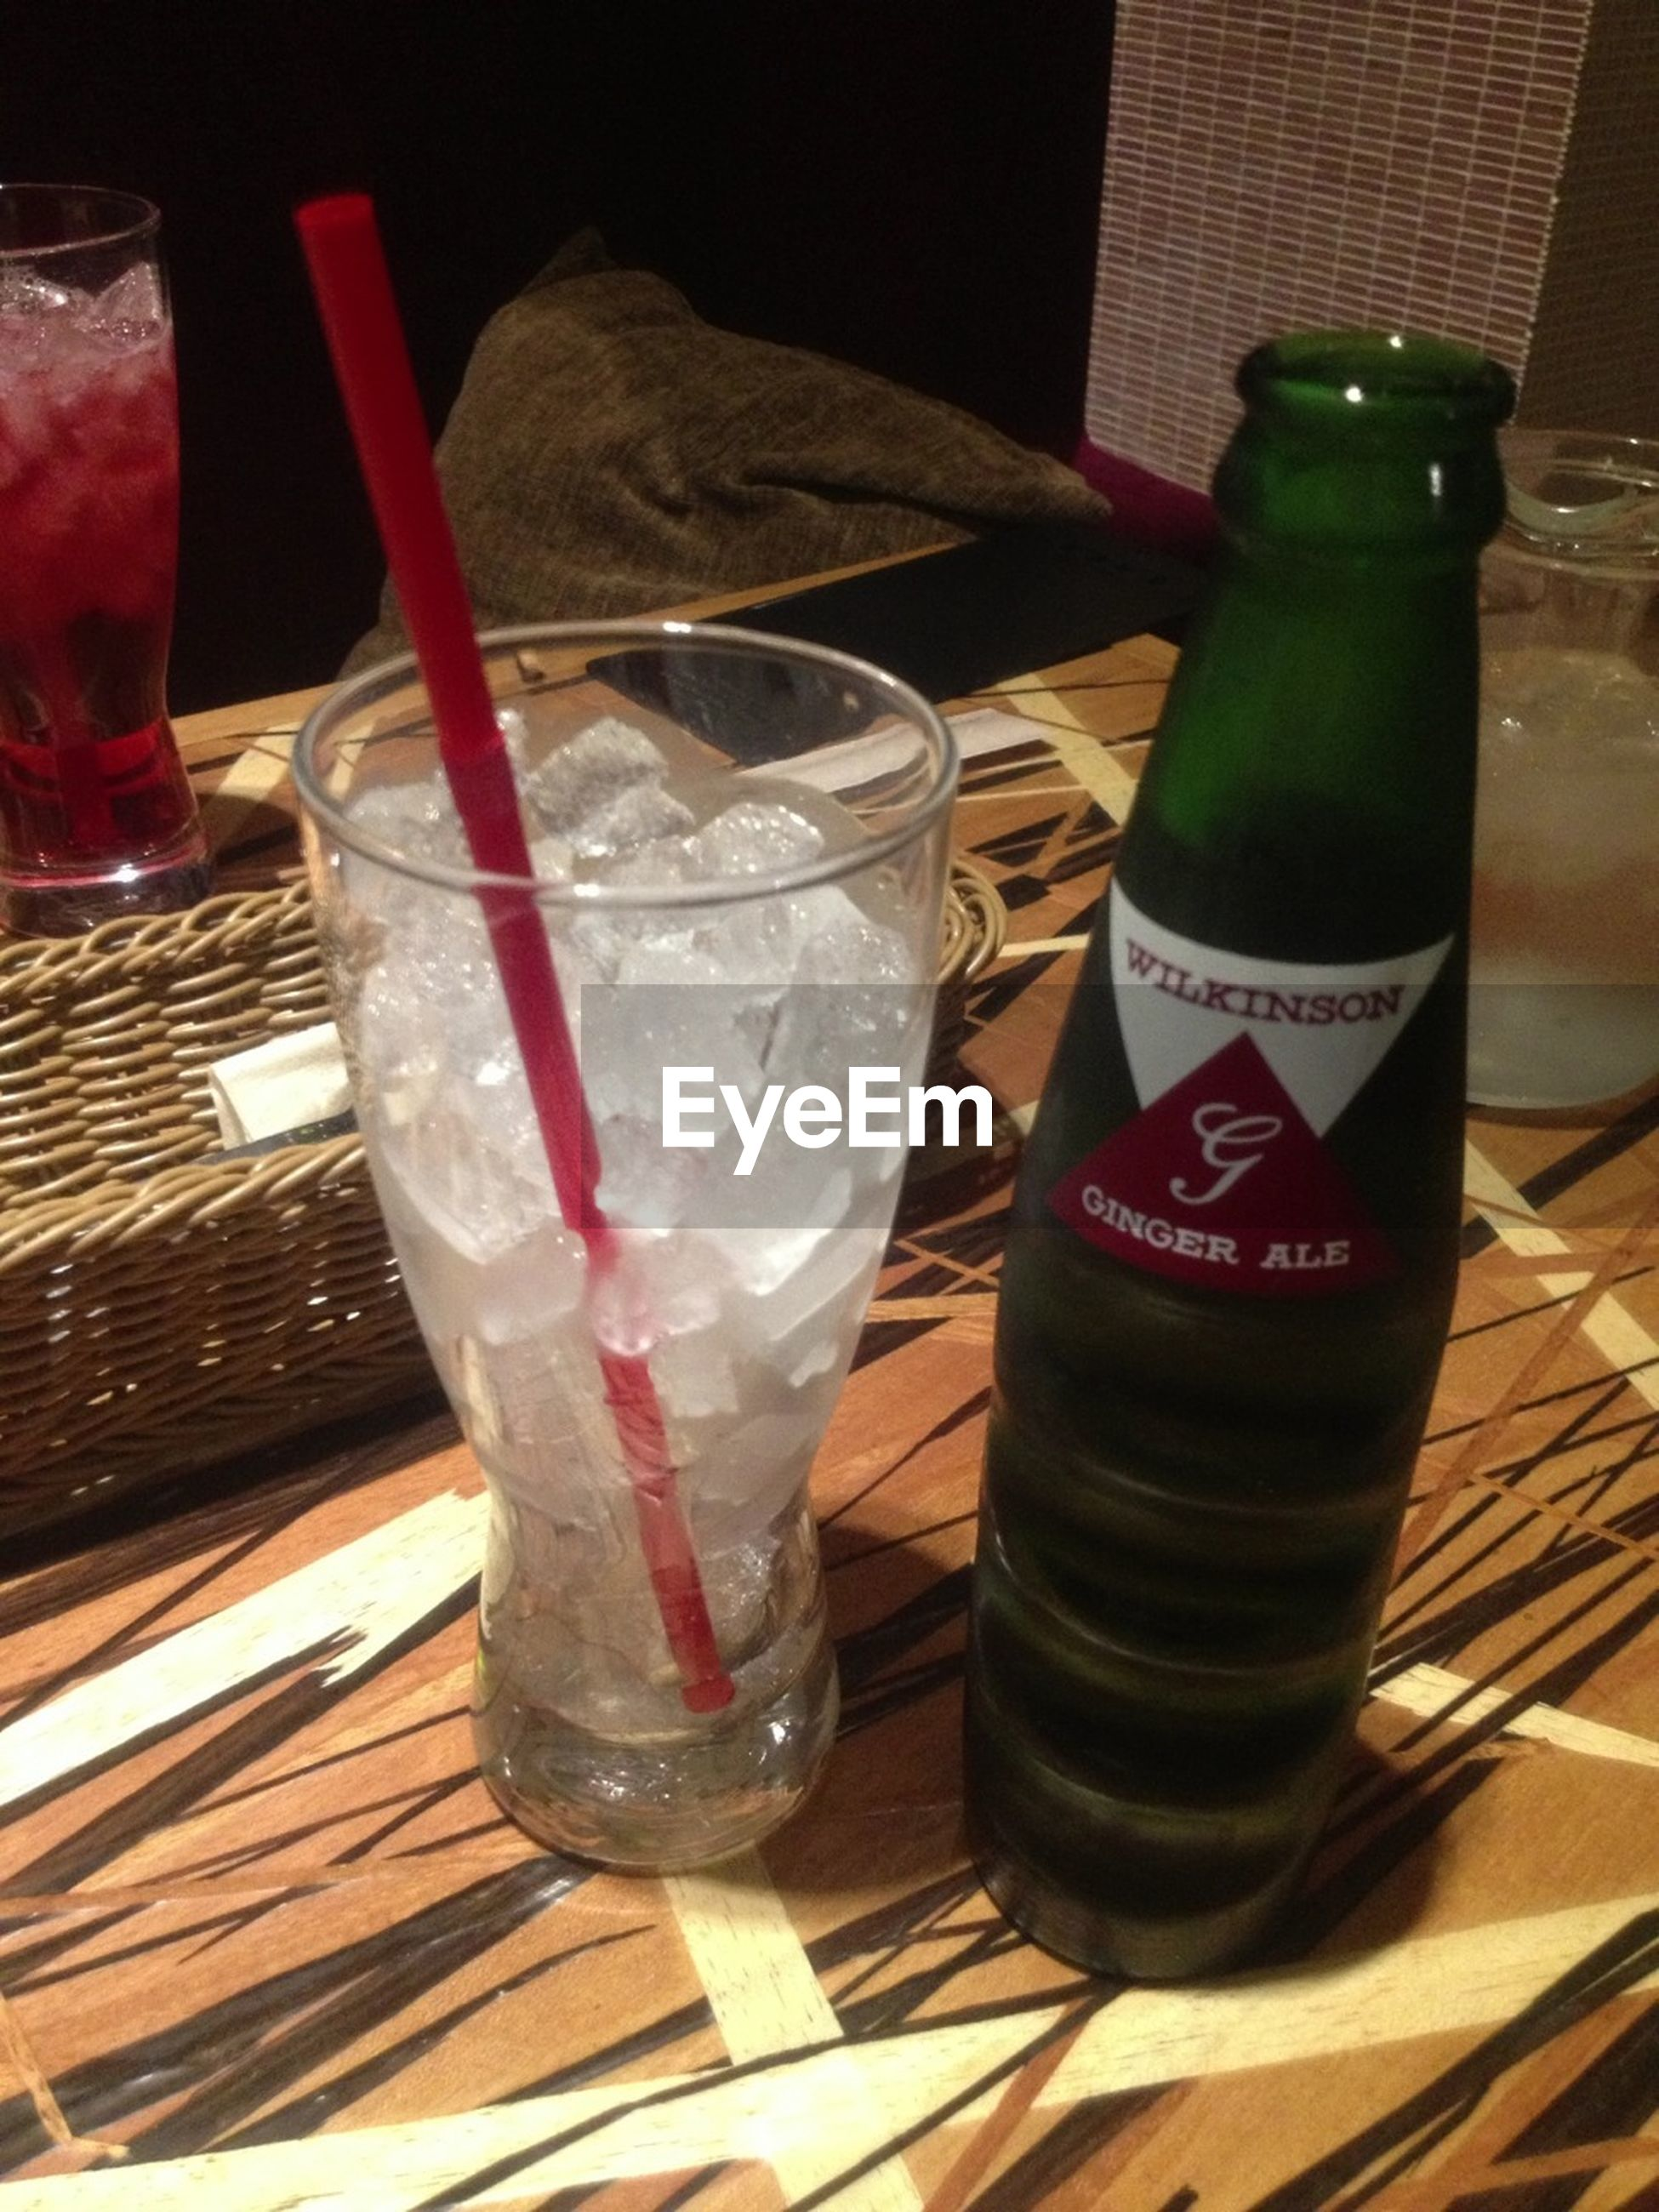 drink, food and drink, drinking glass, refreshment, table, freshness, indoors, still life, alcohol, glass - material, close-up, drinking straw, wood - material, glass, beer glass, cold temperature, cocktail, ice cube, restaurant, transparent